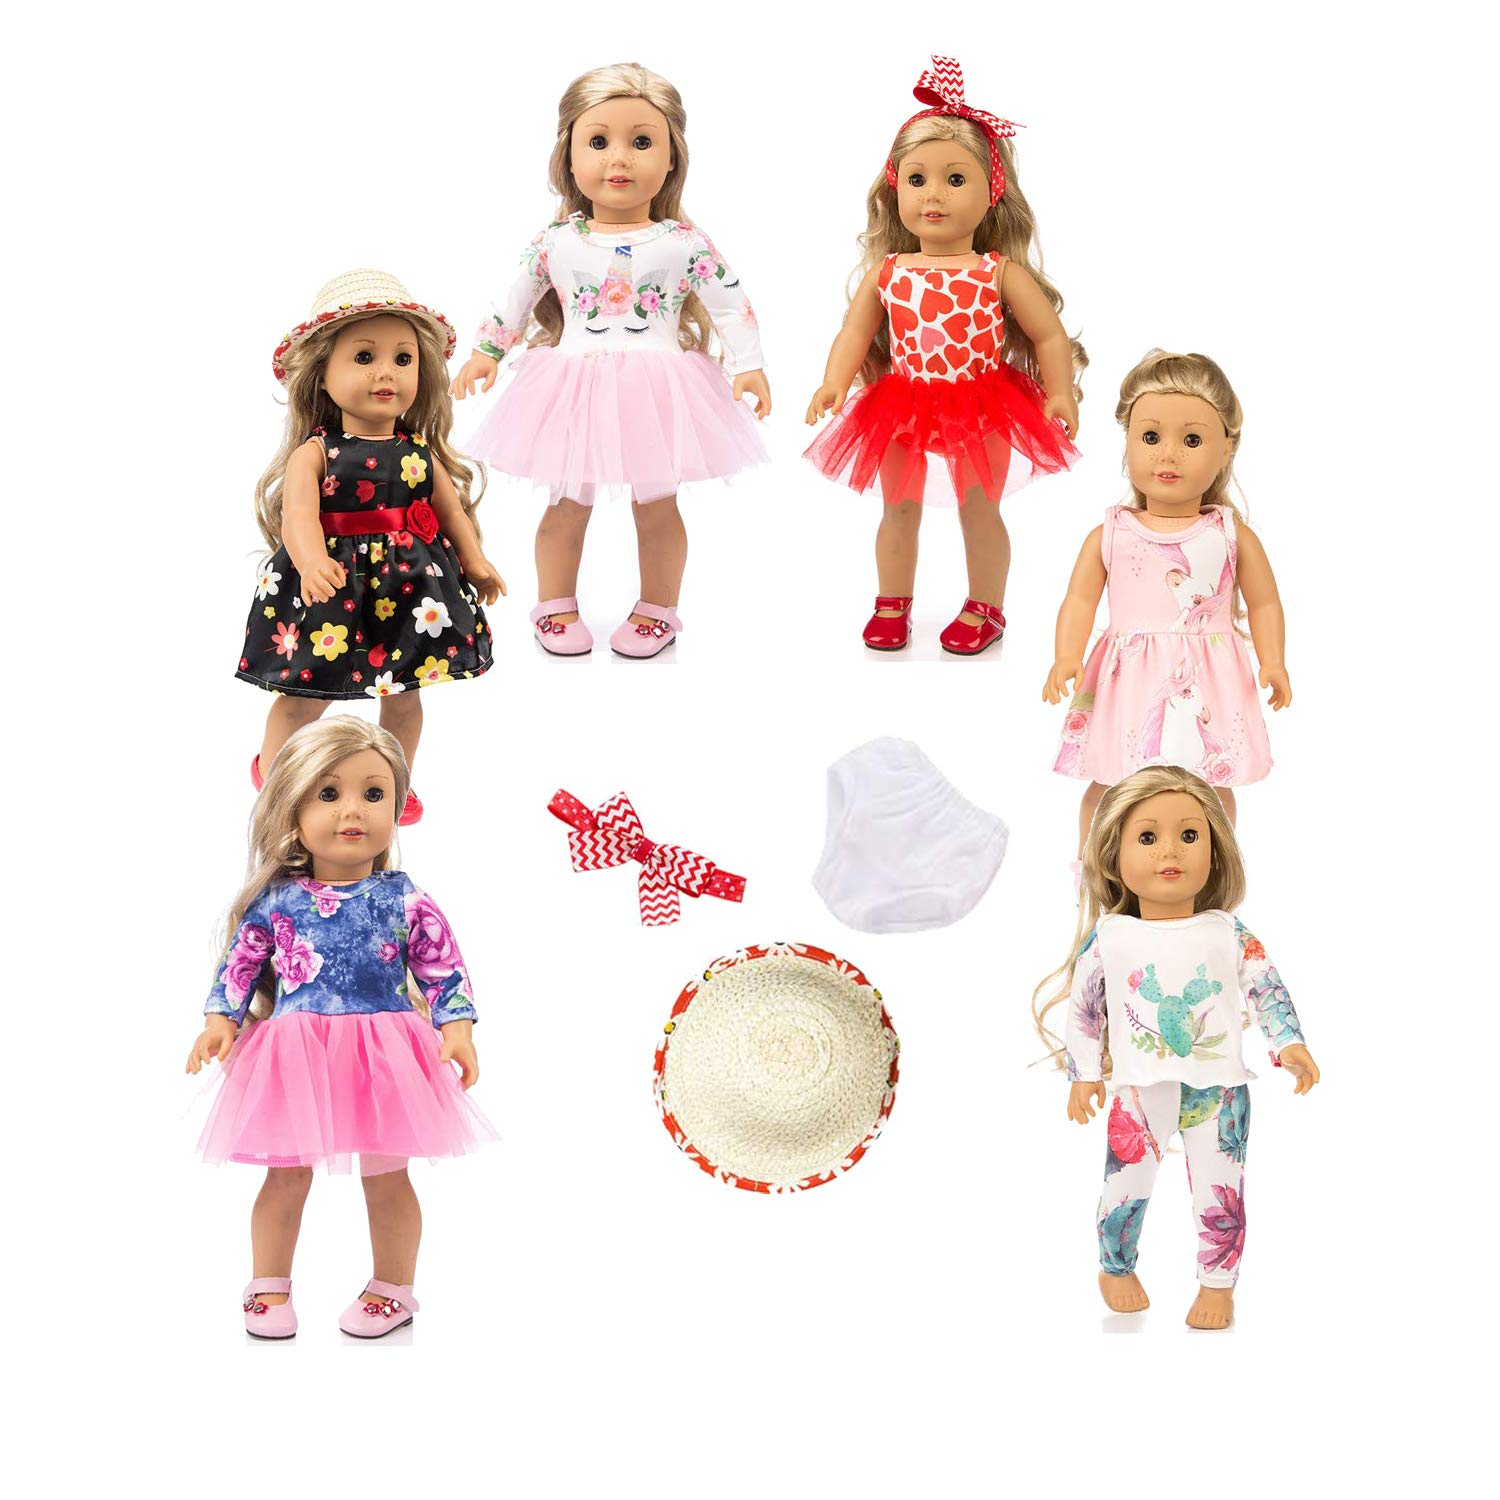 American girsl Doll Unicorn, American girsl Doll Clothes,American girsl Doll Accessories, 18 inch American girsl Doll Unicorn Clothes American girsl Doll Accessories 6 Sets